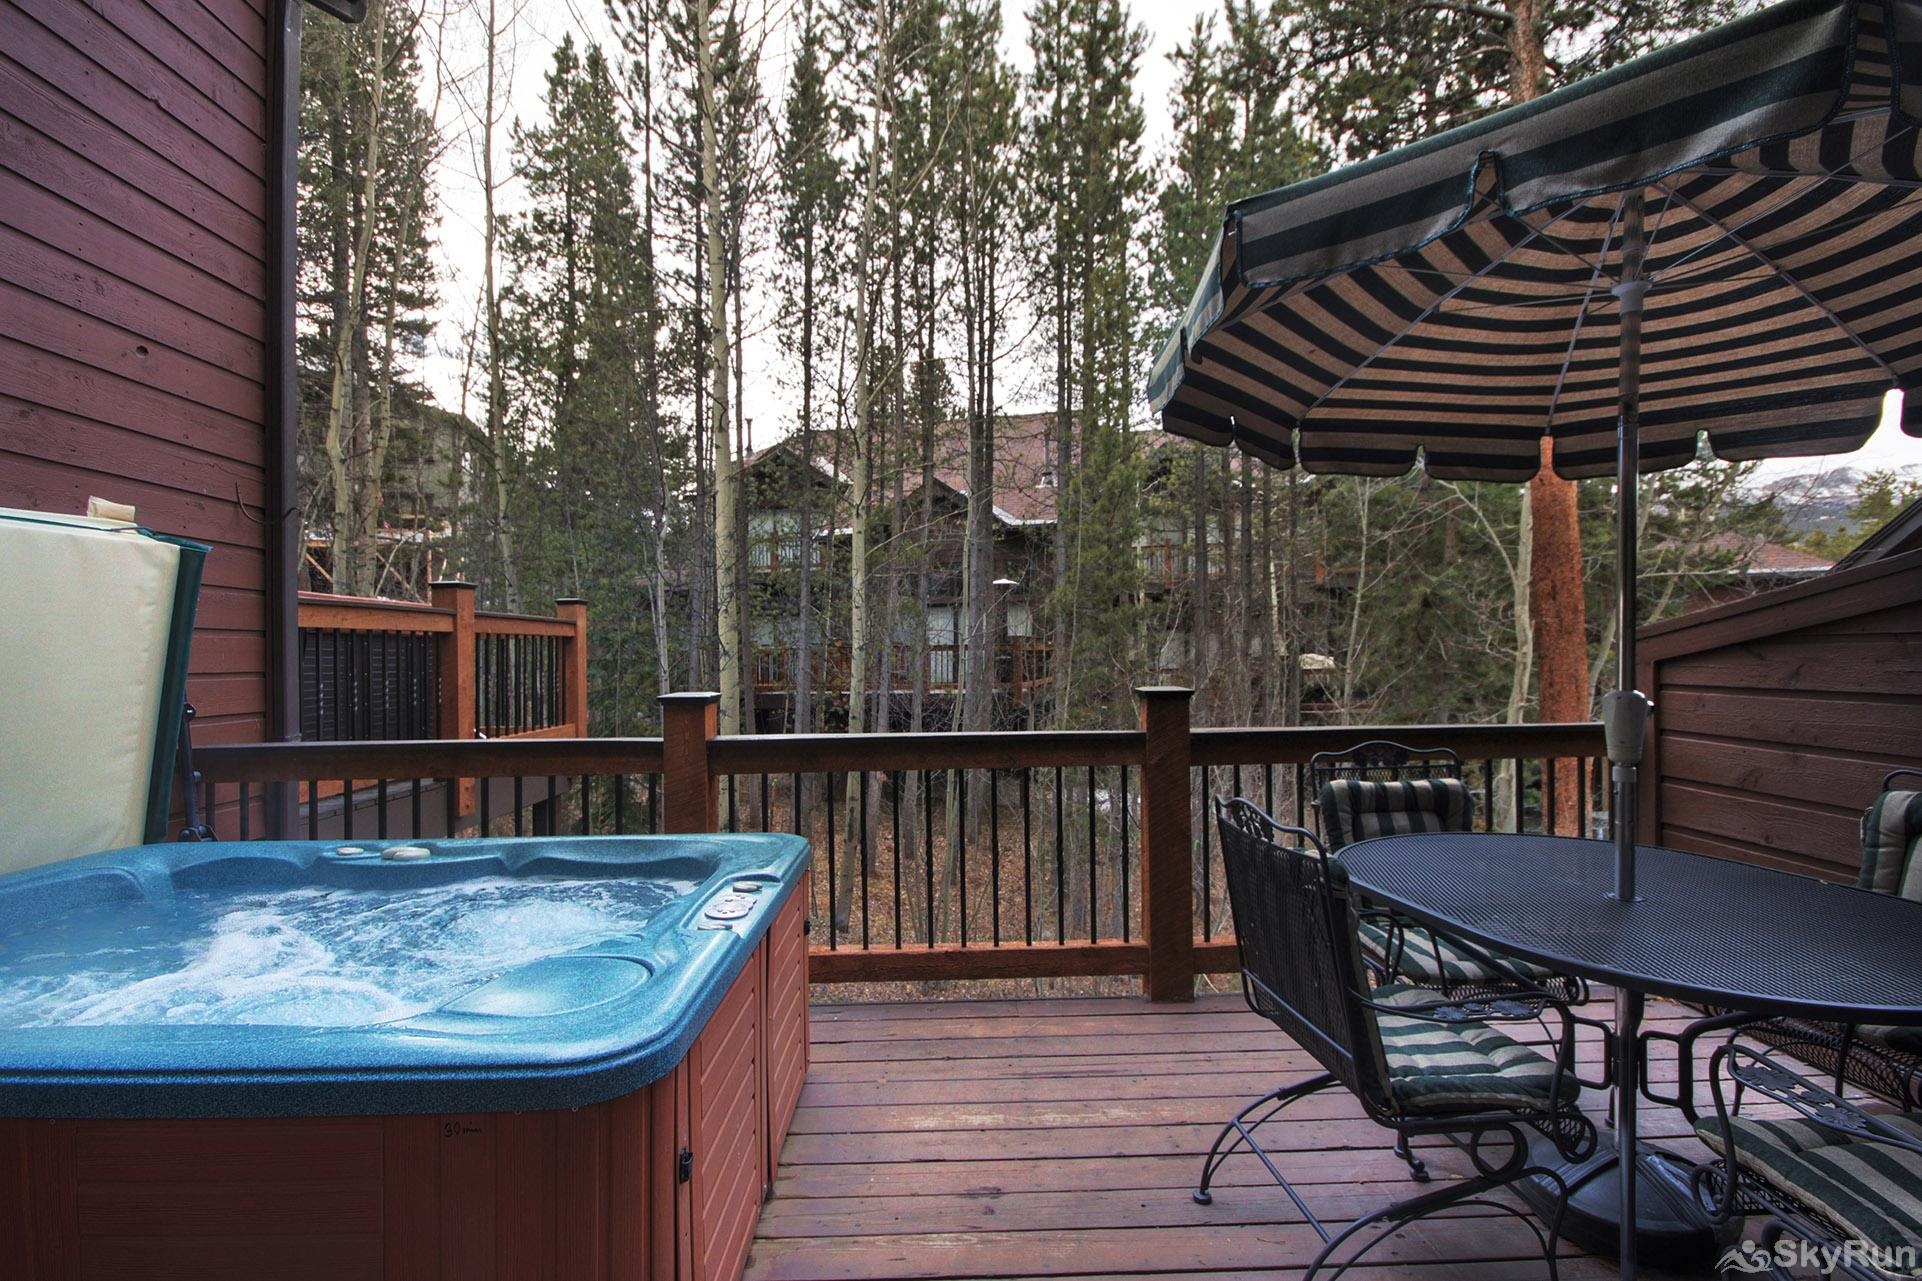 Village Point 303 Relax and unwind in your own private outdoor hot tub